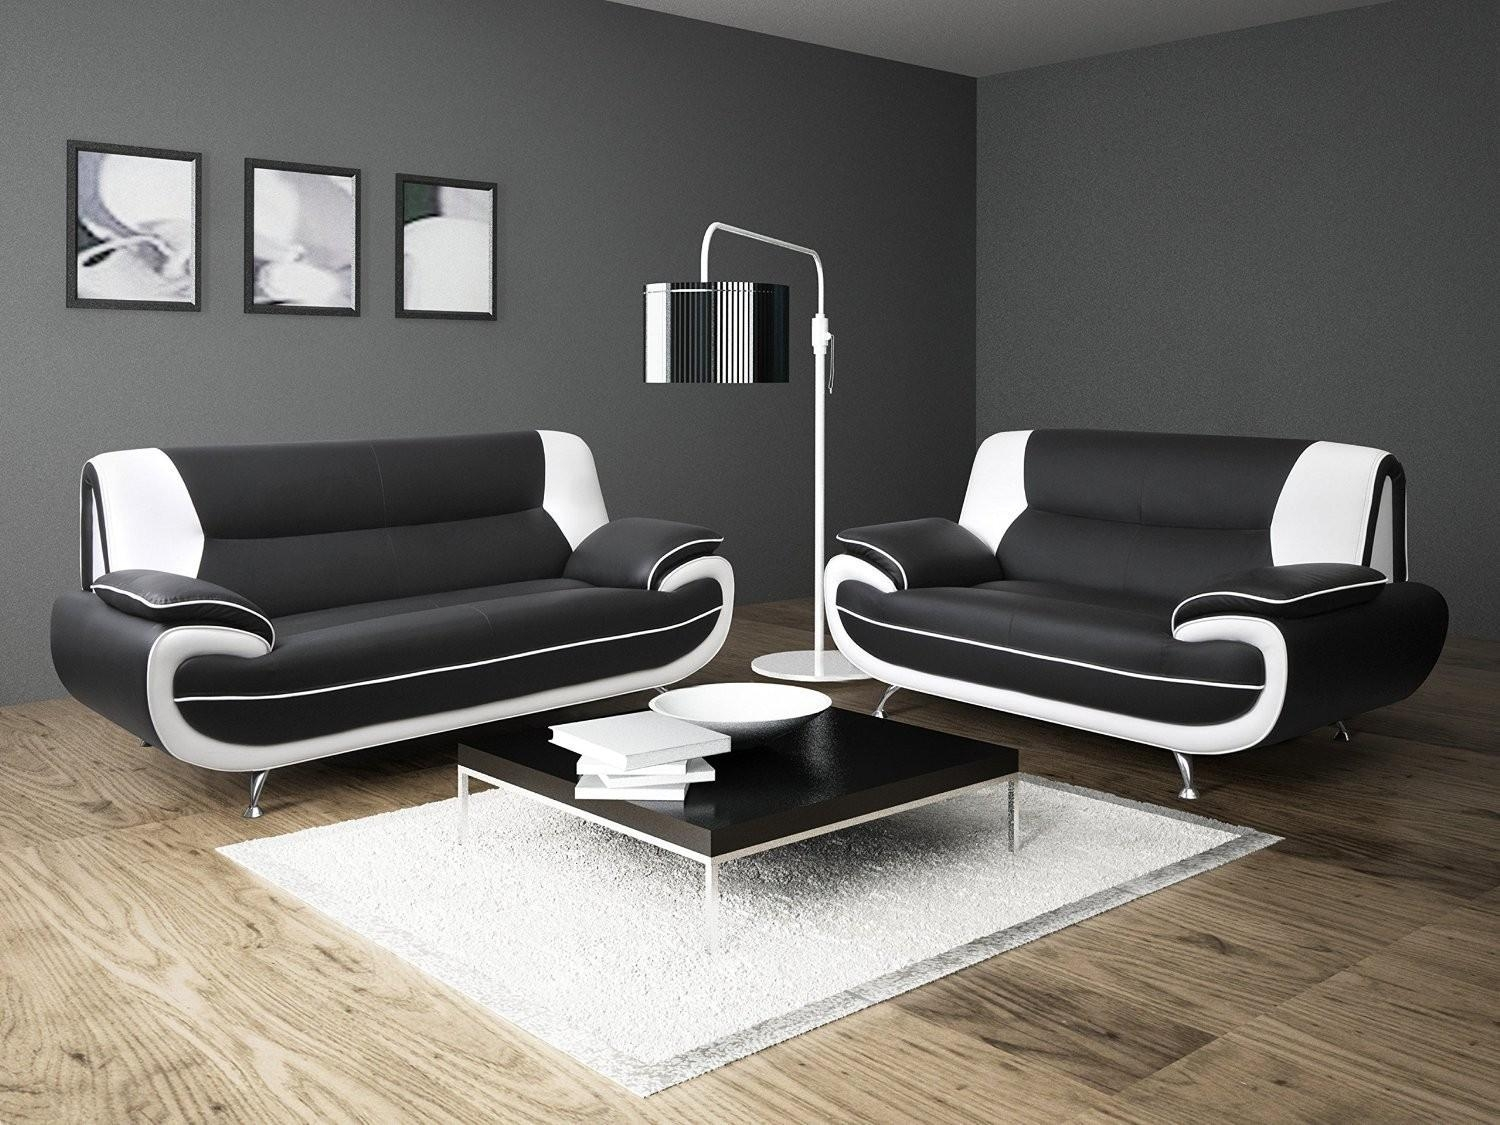 2018 Latest Black And White Leather Sofas Sofa Ideas